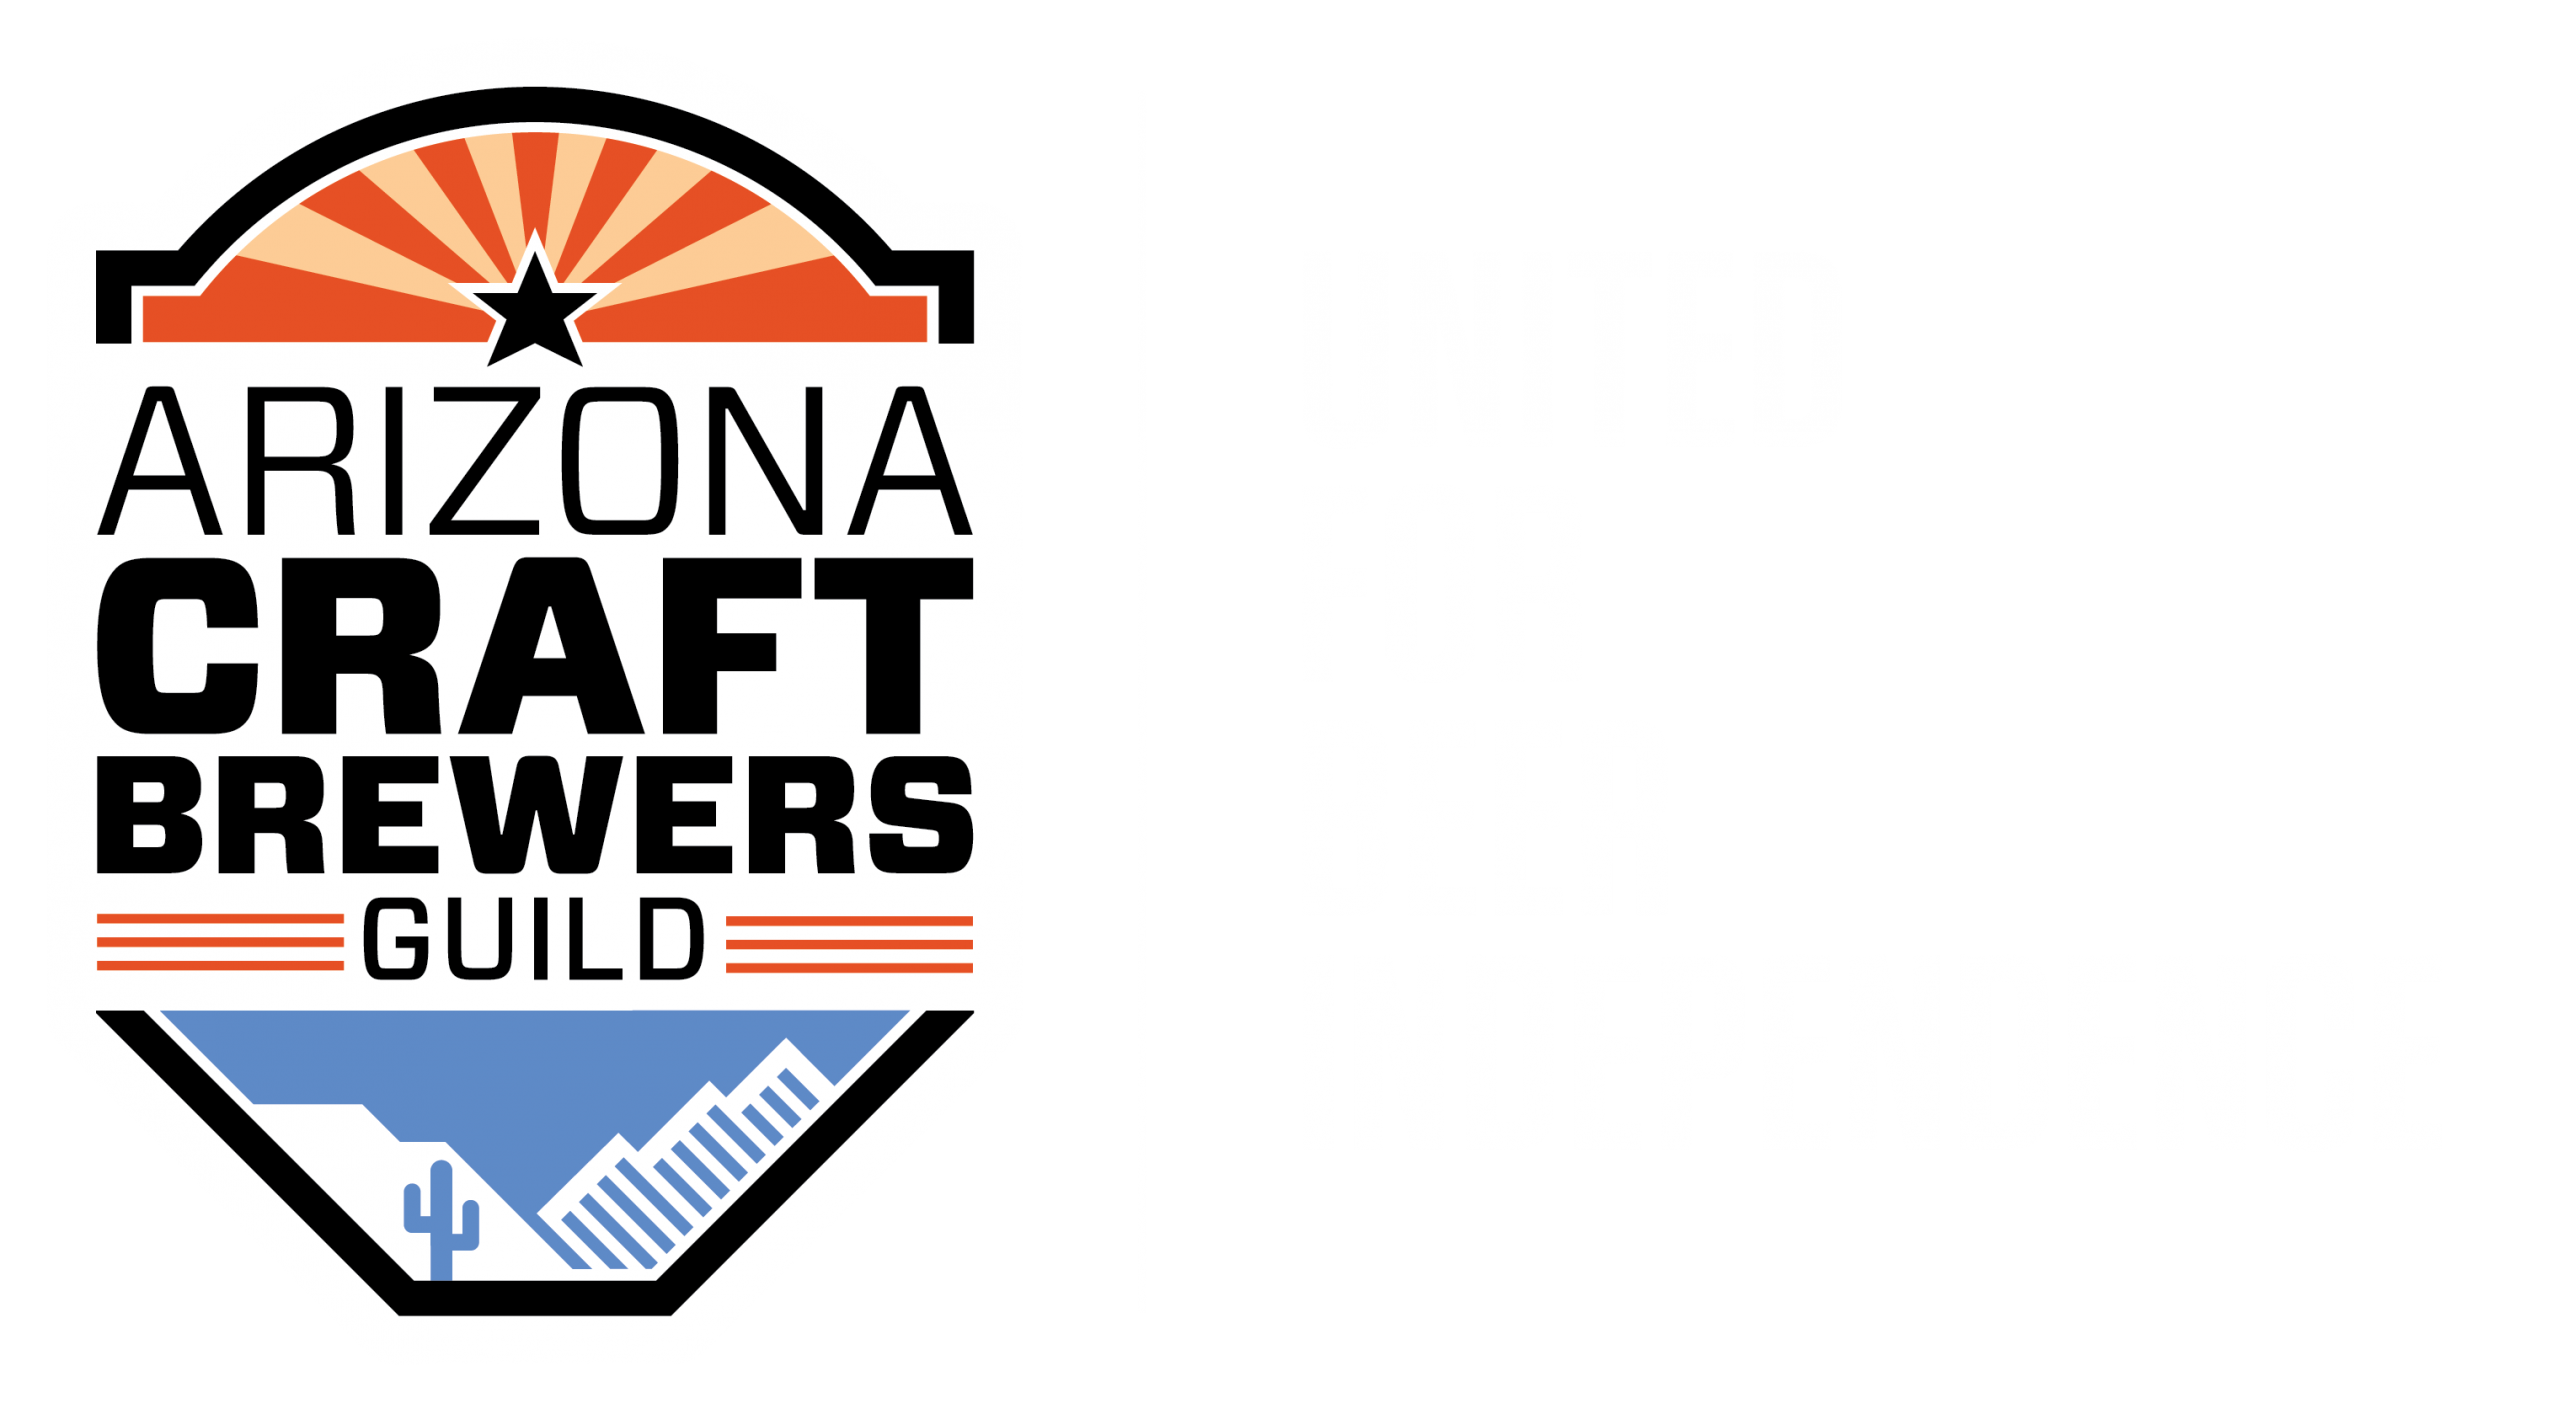 Kristine Bradley | Arizona Craft Brewers Guild